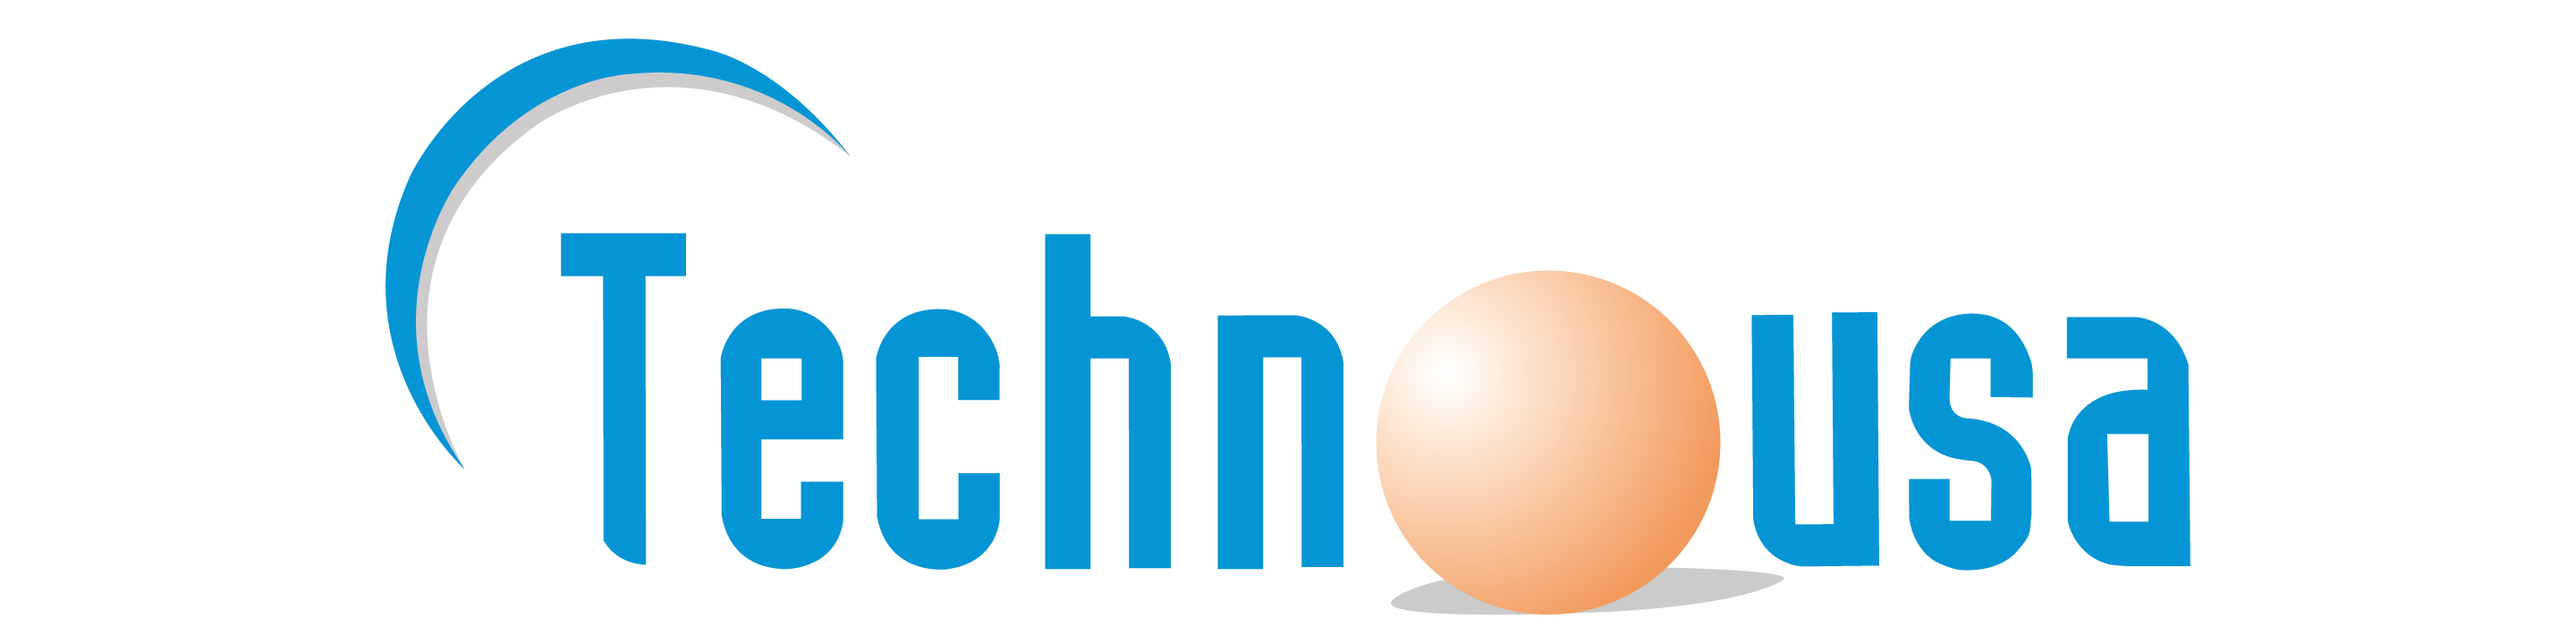 Technousa Consulting Services Pvt. Ltd. Logo